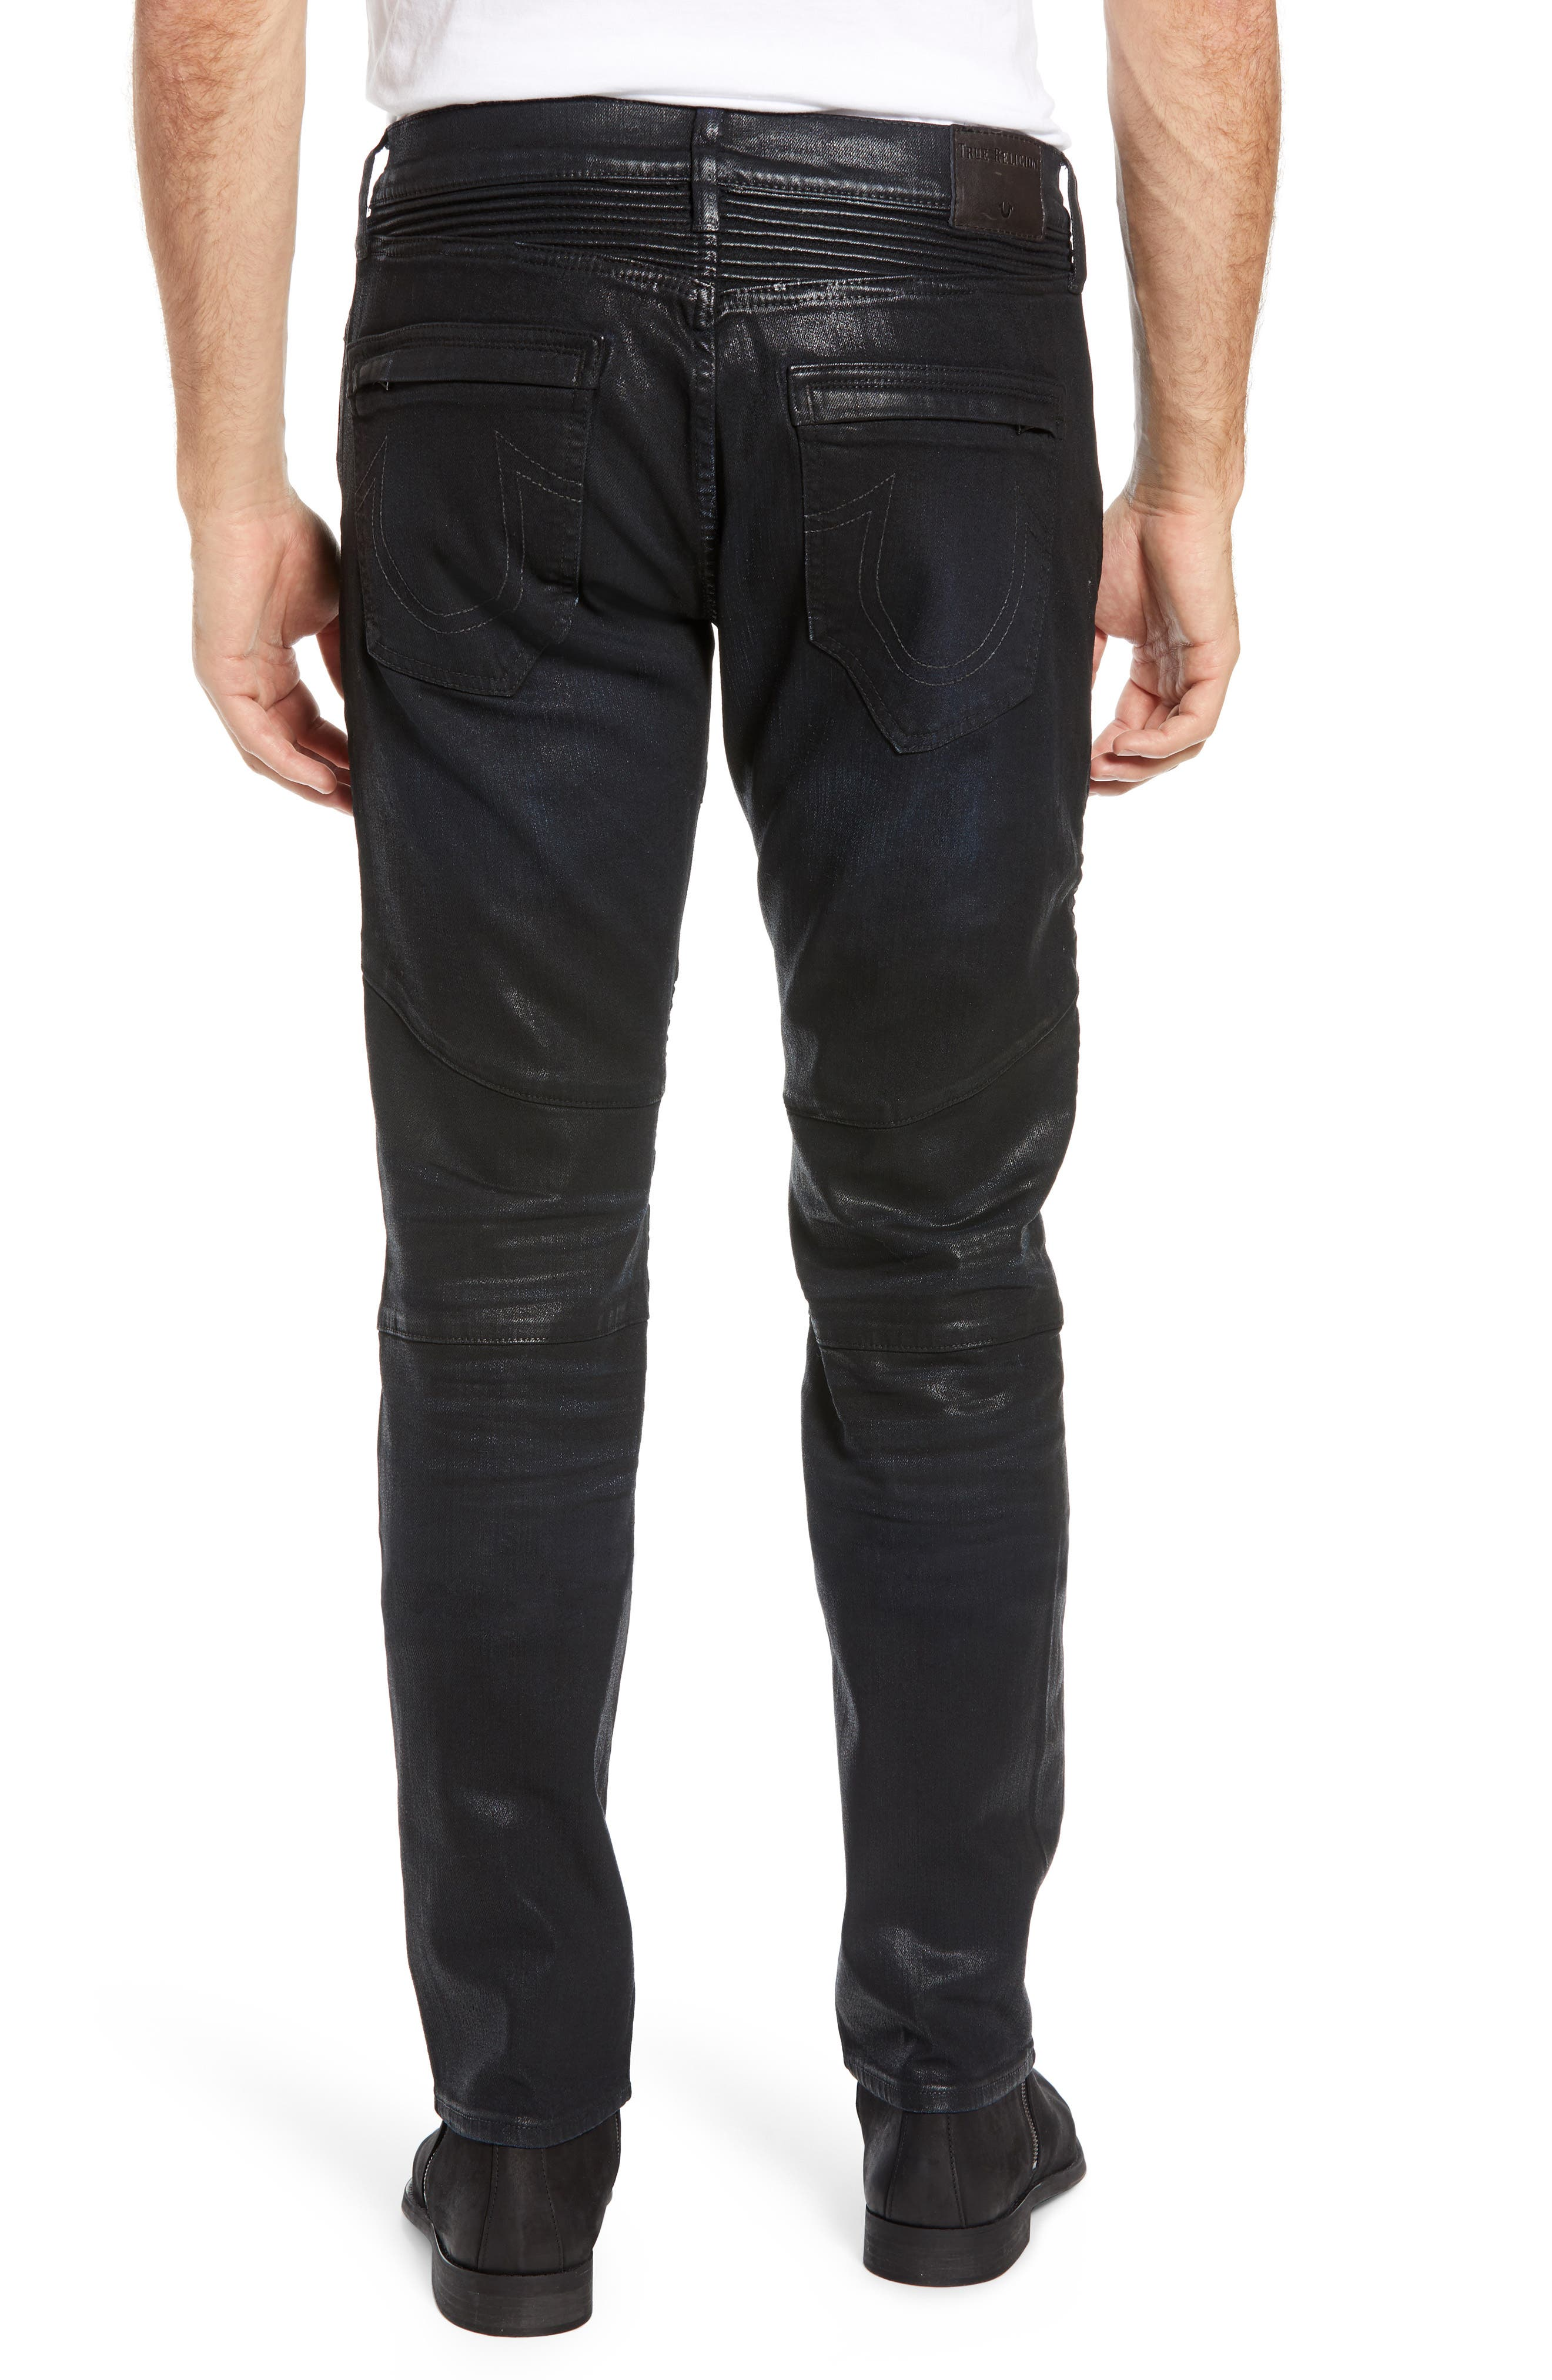 Rocco Skinny Fit Moto Jeans,                             Alternate thumbnail 2, color,                             FLGD BOOST BLUE